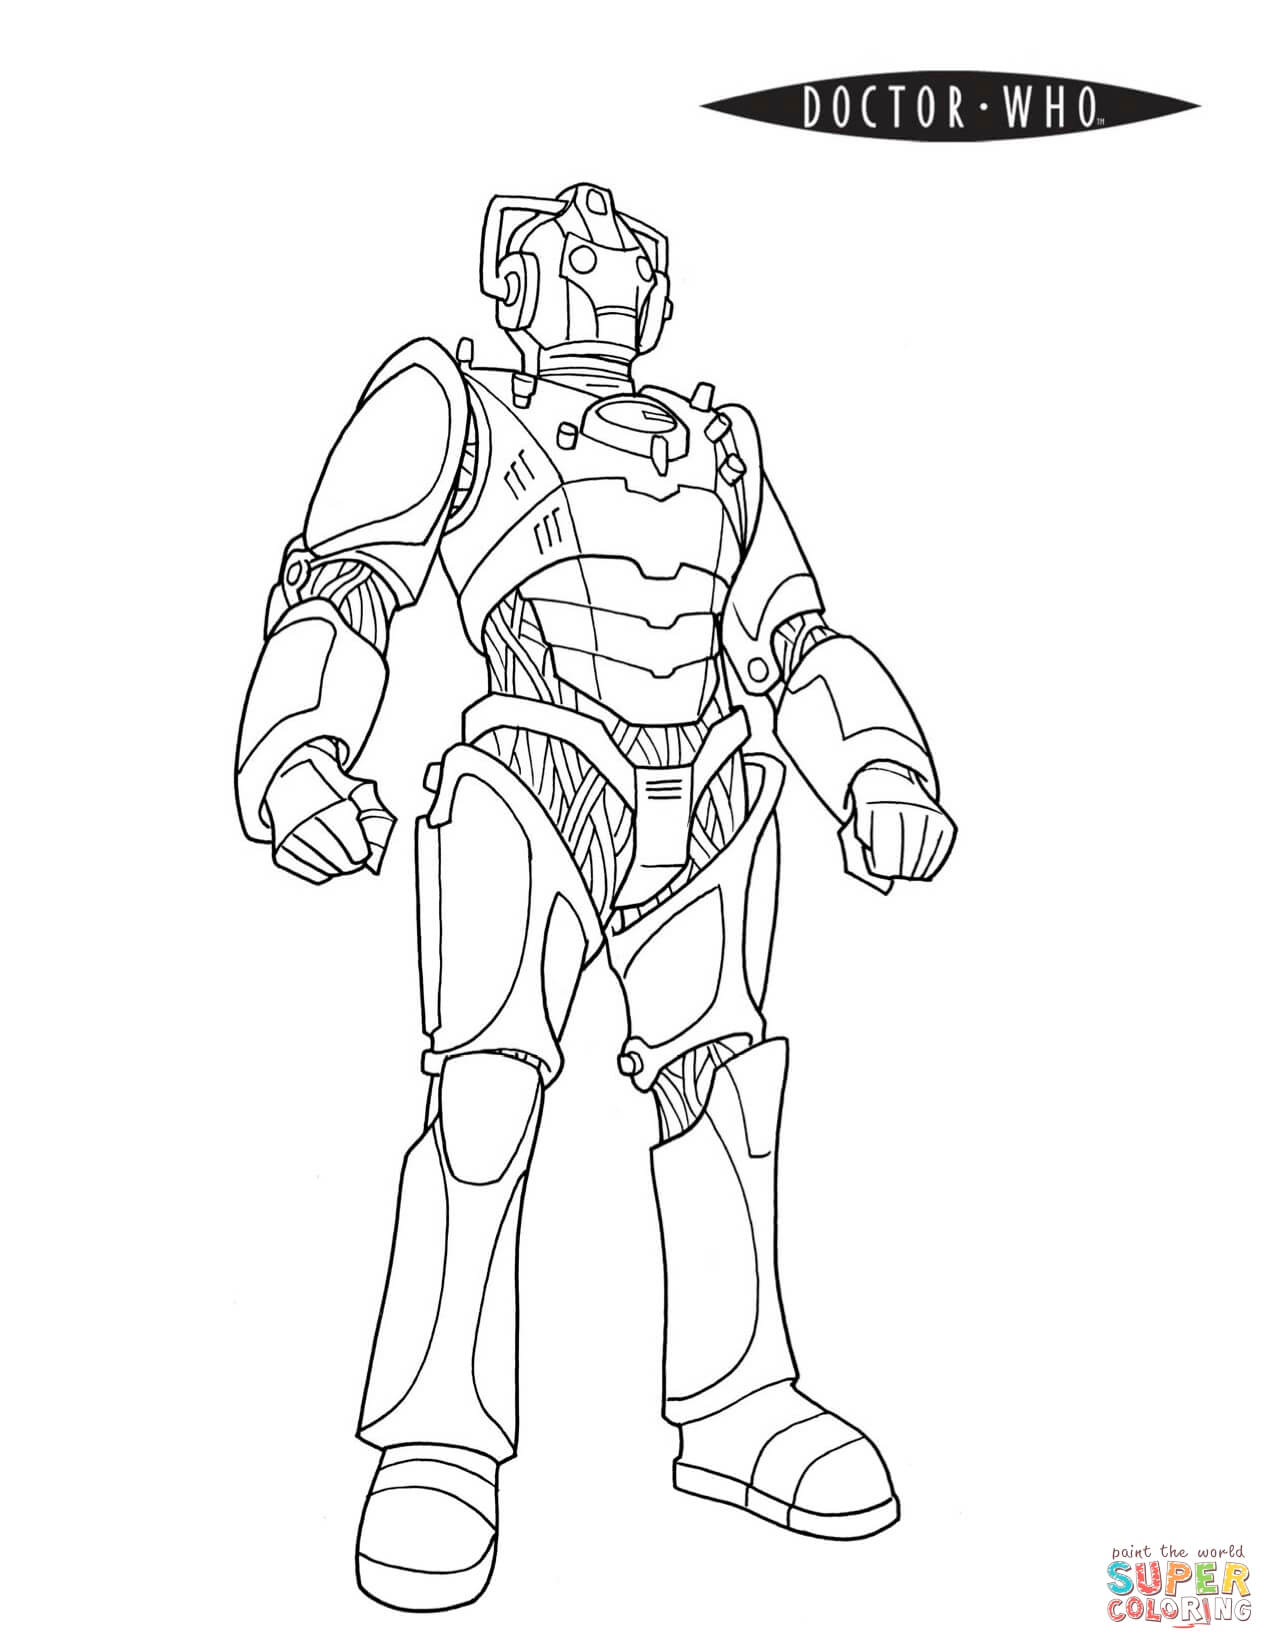 doctor coloring page - doctor who coloring pages az coloring pages